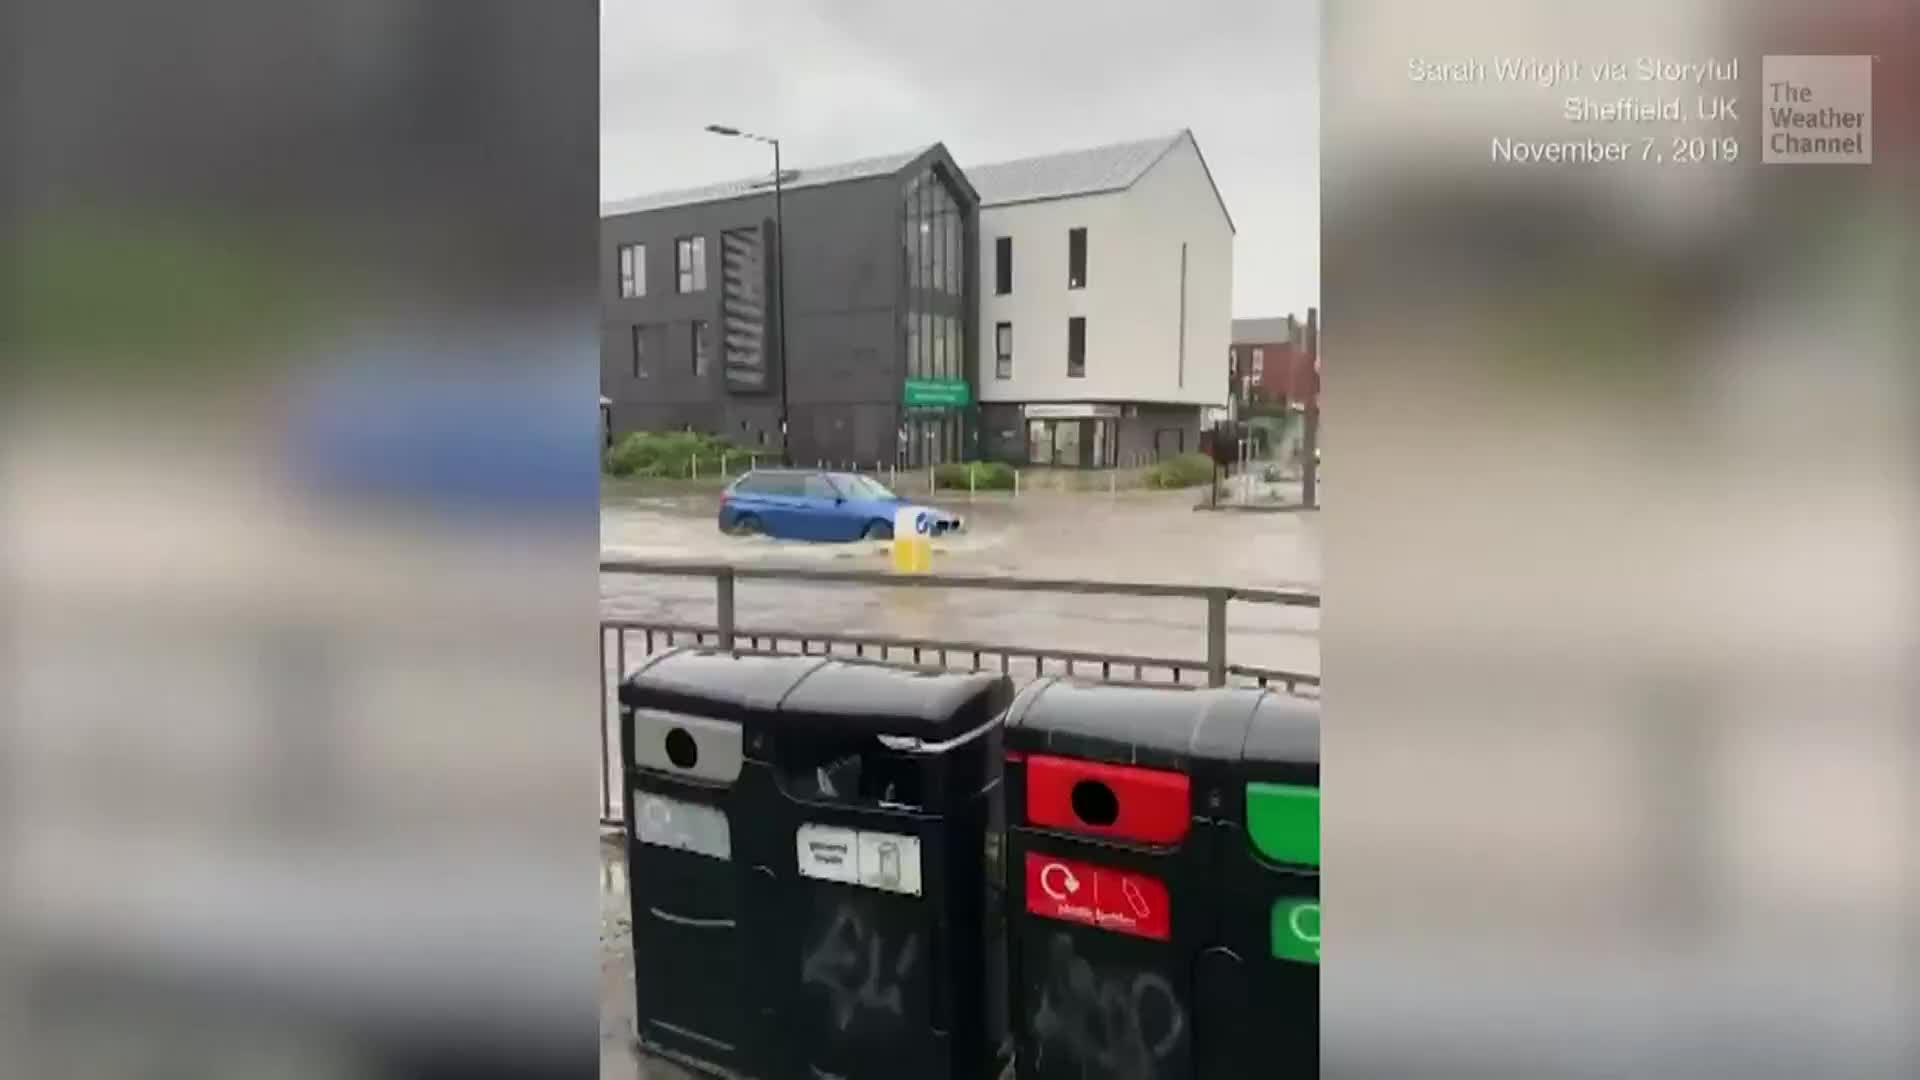 Heavy rain also caused a river to burst its banks forcing evacuations.